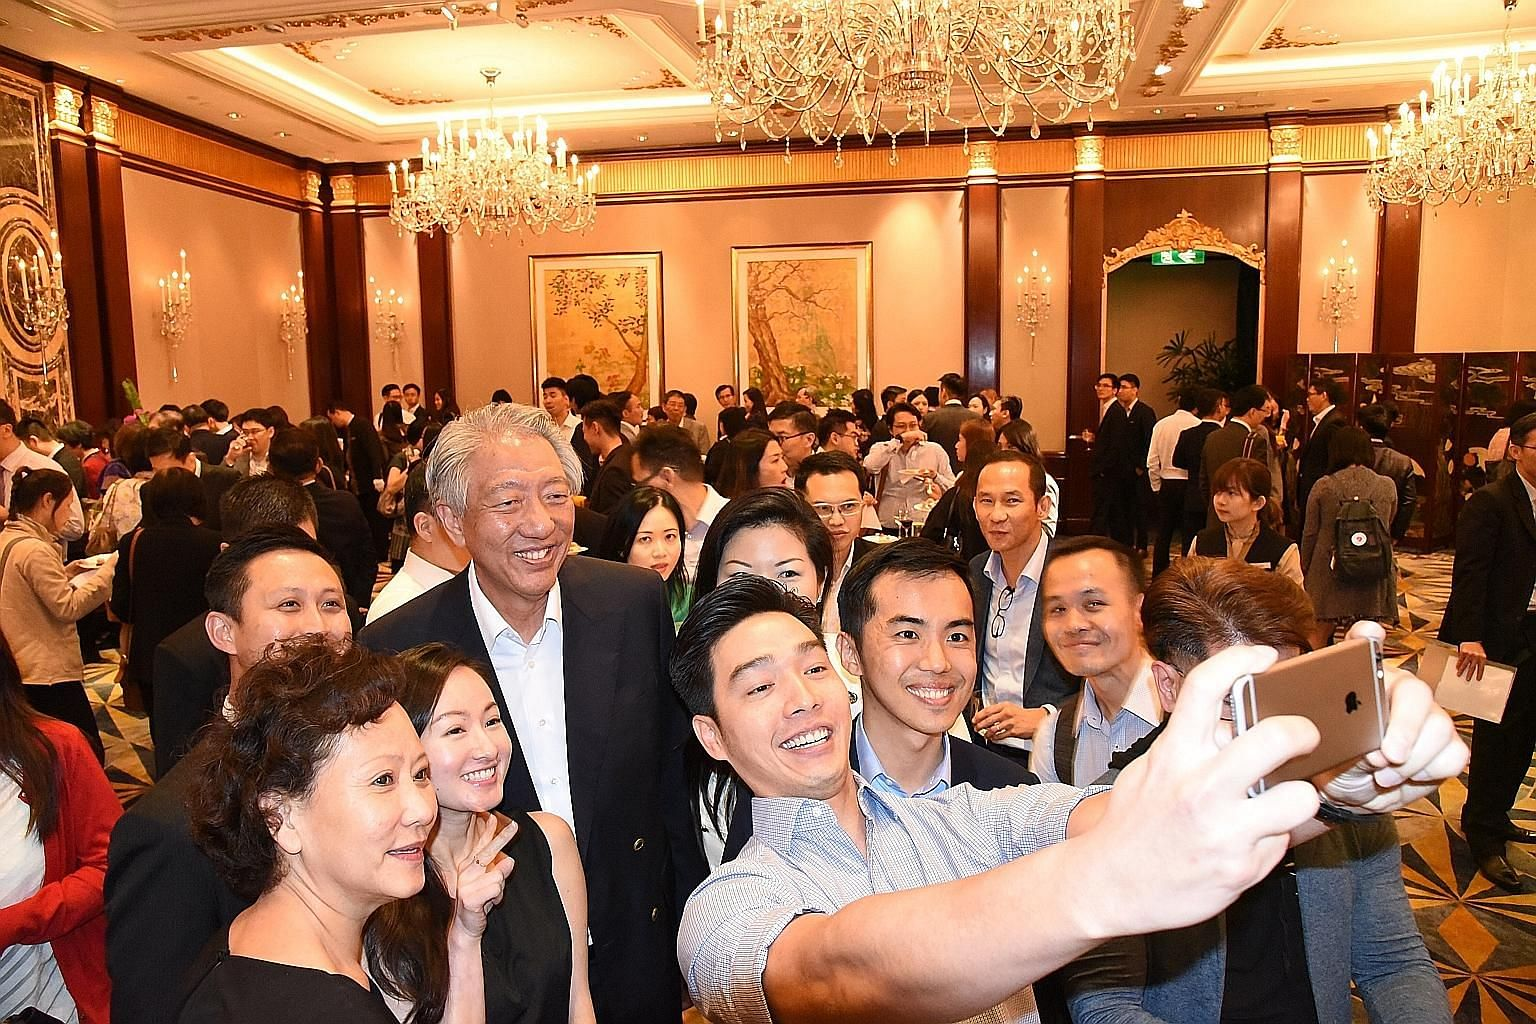 About 250 Singaporeans who are based in Hong Kong attended the event hosted by Consul-General Foo Teow Lee at Island Shangri-La hotel. They got to meet and chat with Deputy Prime Minister Teo Chee Hean.